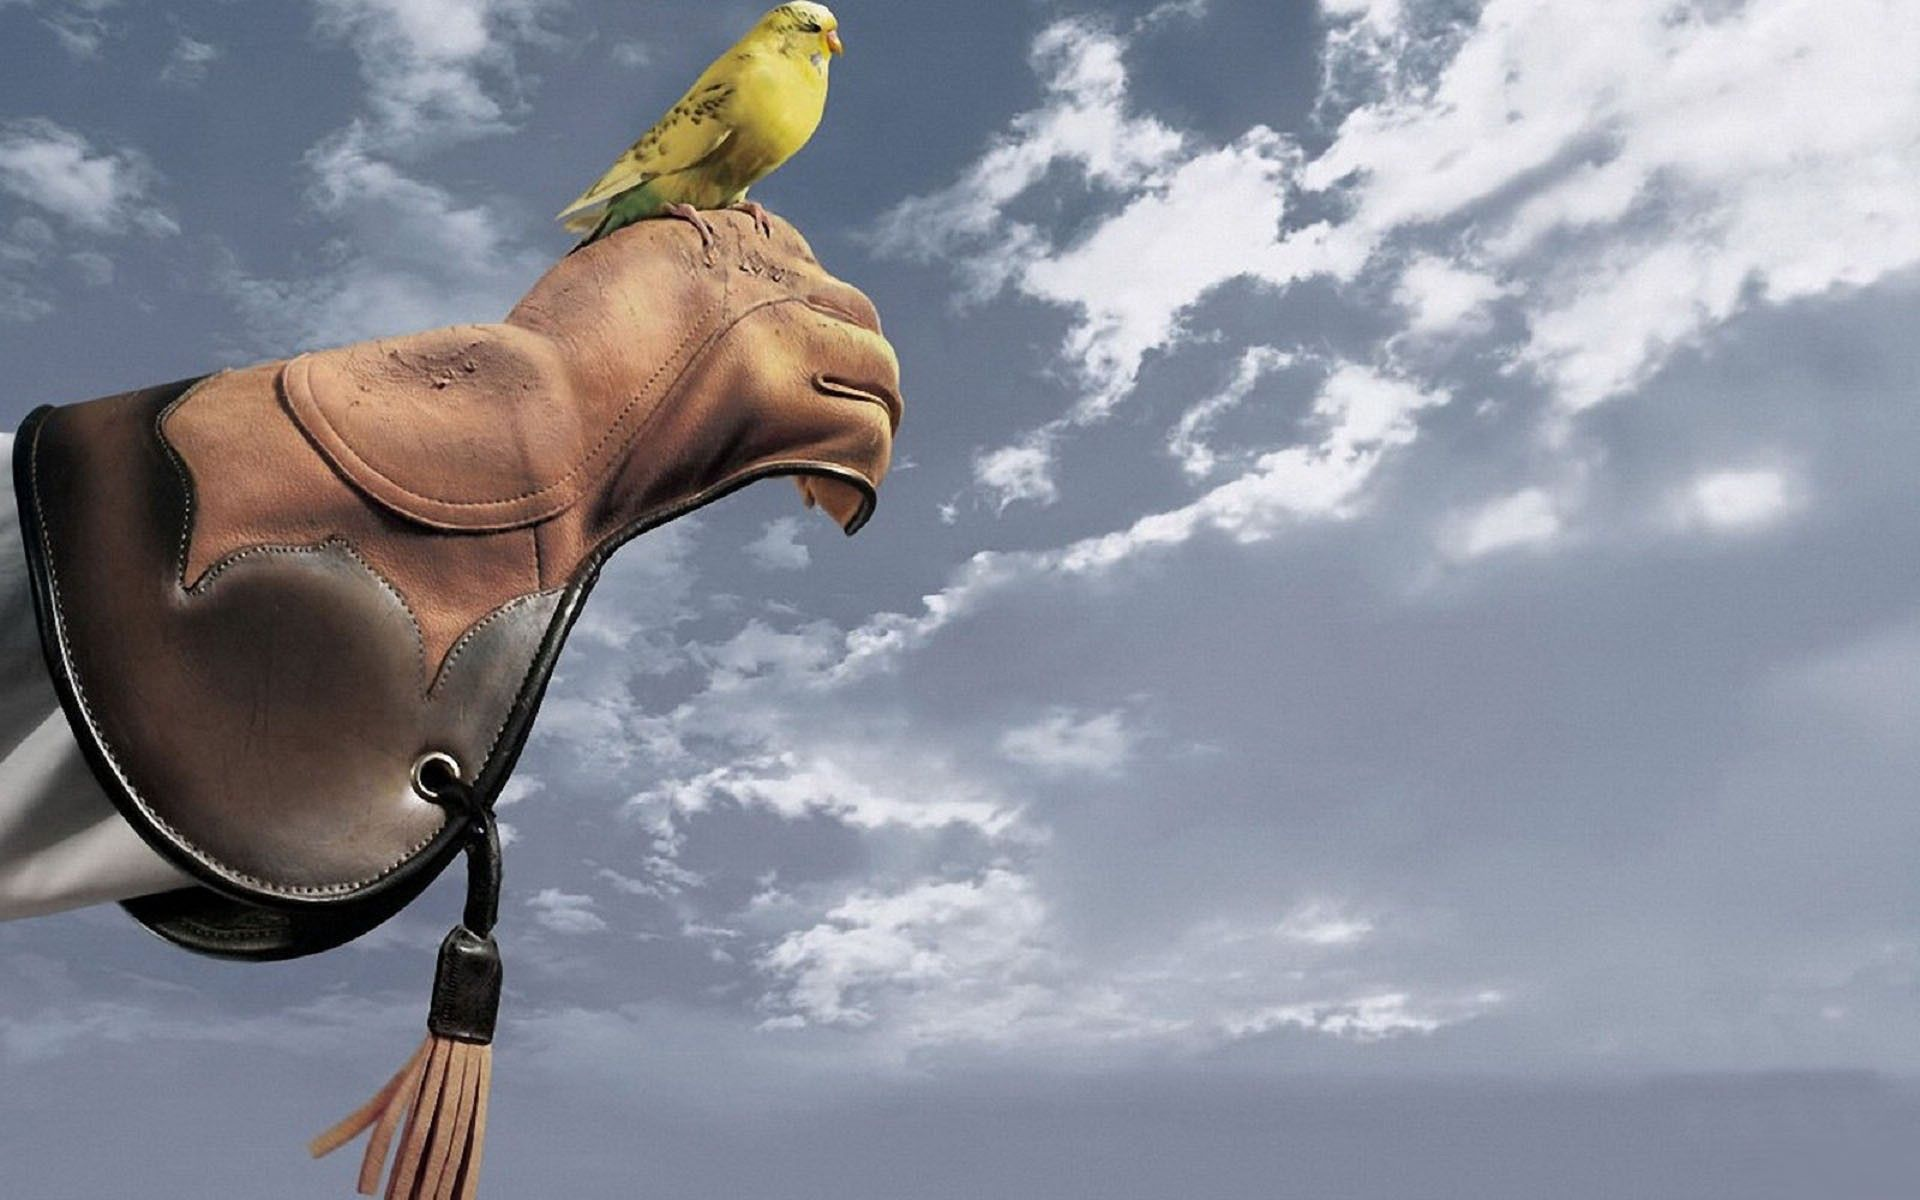 73097 download wallpaper Animals, Parrots, Hand, Sky, Color screensavers and pictures for free